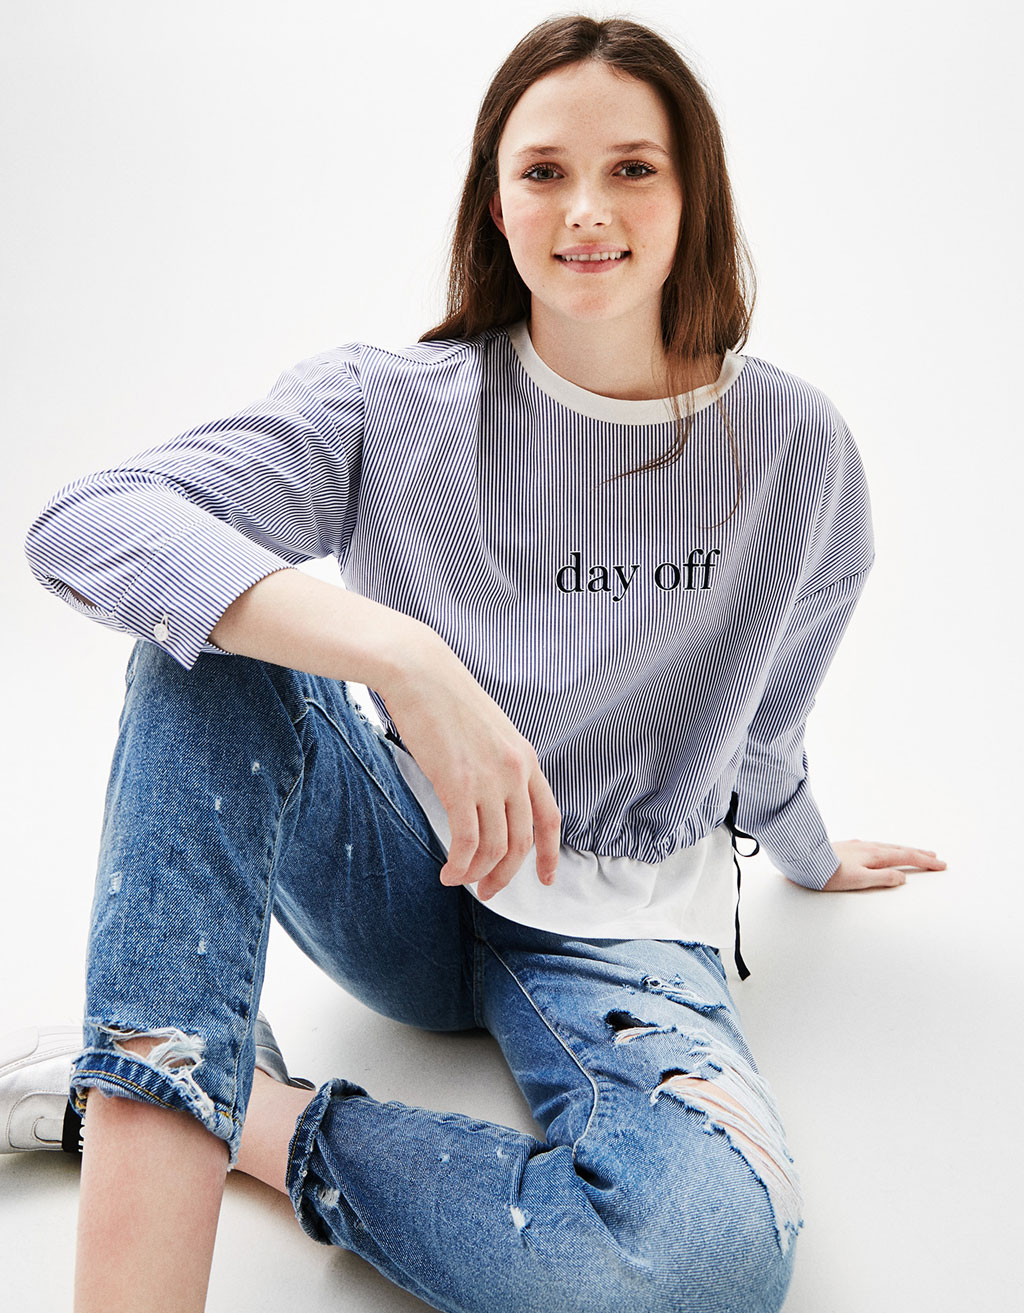 Contrast T-shirt with text